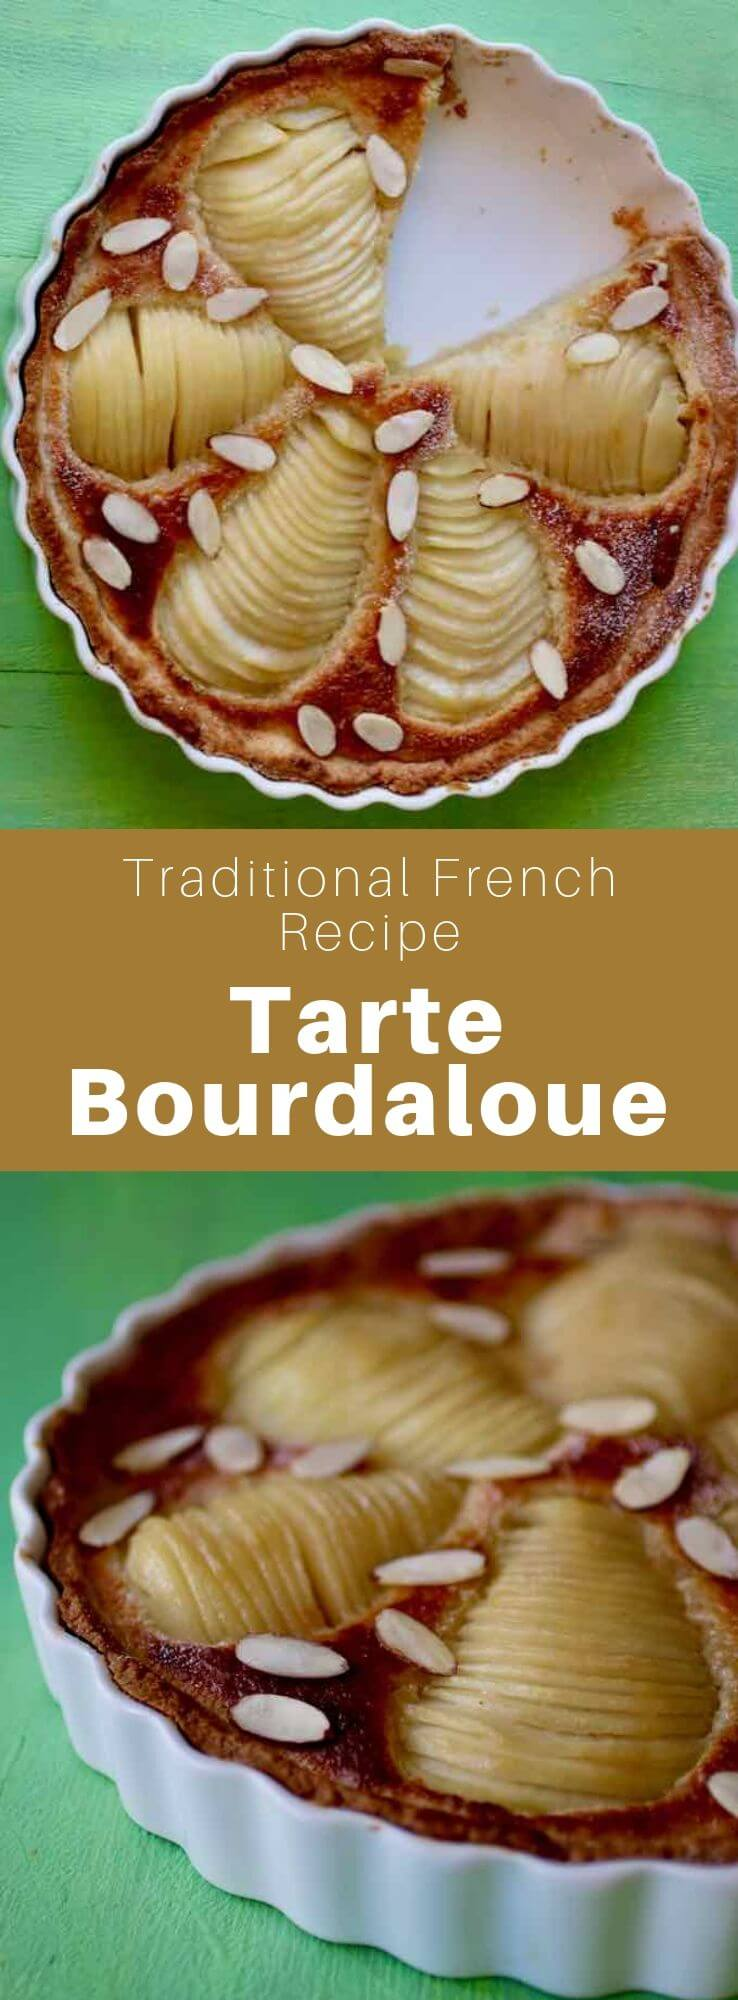 The tarte Bourdaloue is a tart prepared with almond cream and poached pears, which was created in a Parisian pastry shop in the middle of the 19th century. #French #FrenchPastry #FrenchCuisine #FrenchRecipe #FrenchFood #WorldCuisine #196flavors